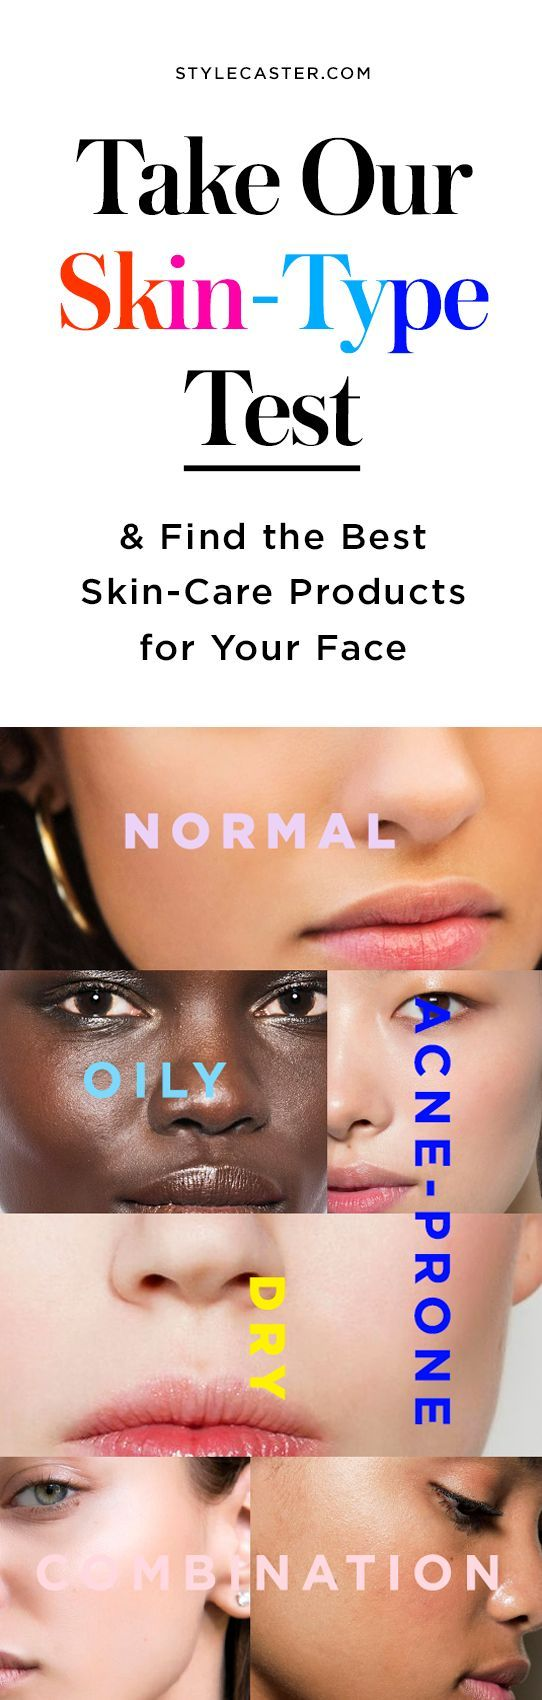 Take Our Easy Skin Type Test — Plus, get expert product recommendations to include in your beauty routine as well as products to avoid. Types include: Normal Skin, Oily Skin, Dry Skin, Combination Skin, & Acne-Prone Skin—which one are you? | @stylecaster